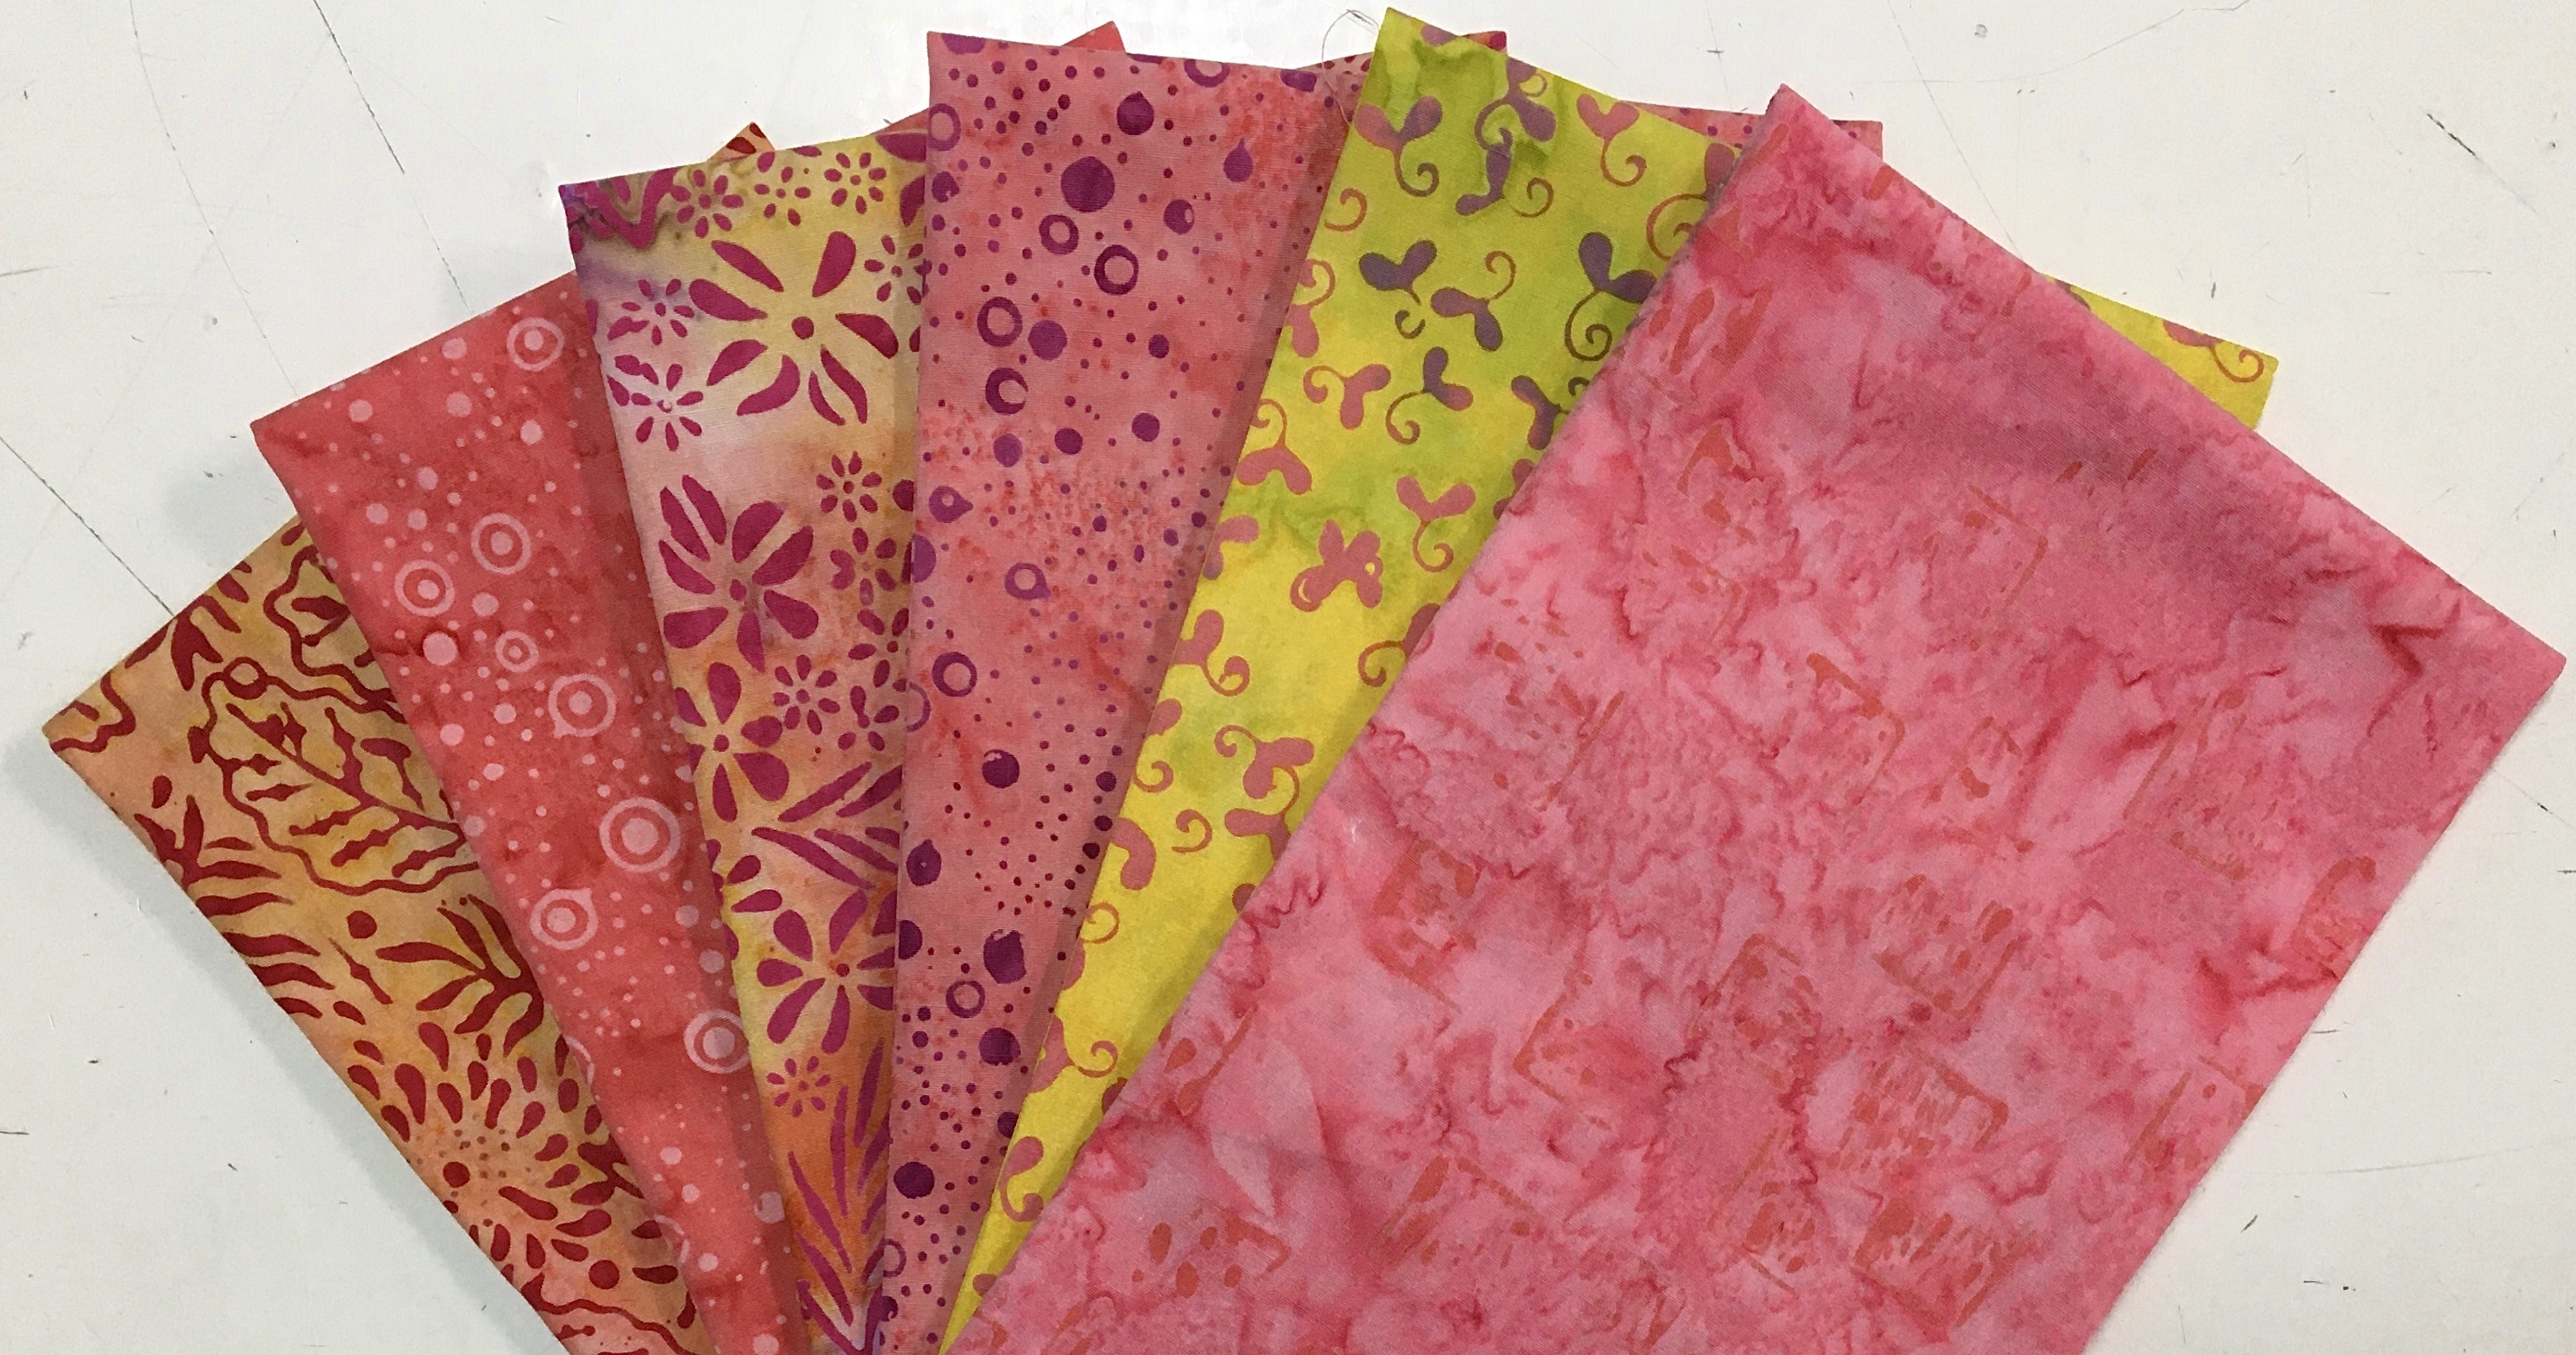 Pink/Coral Batik Fat Quarter Bundle (6 Pieces) 56411